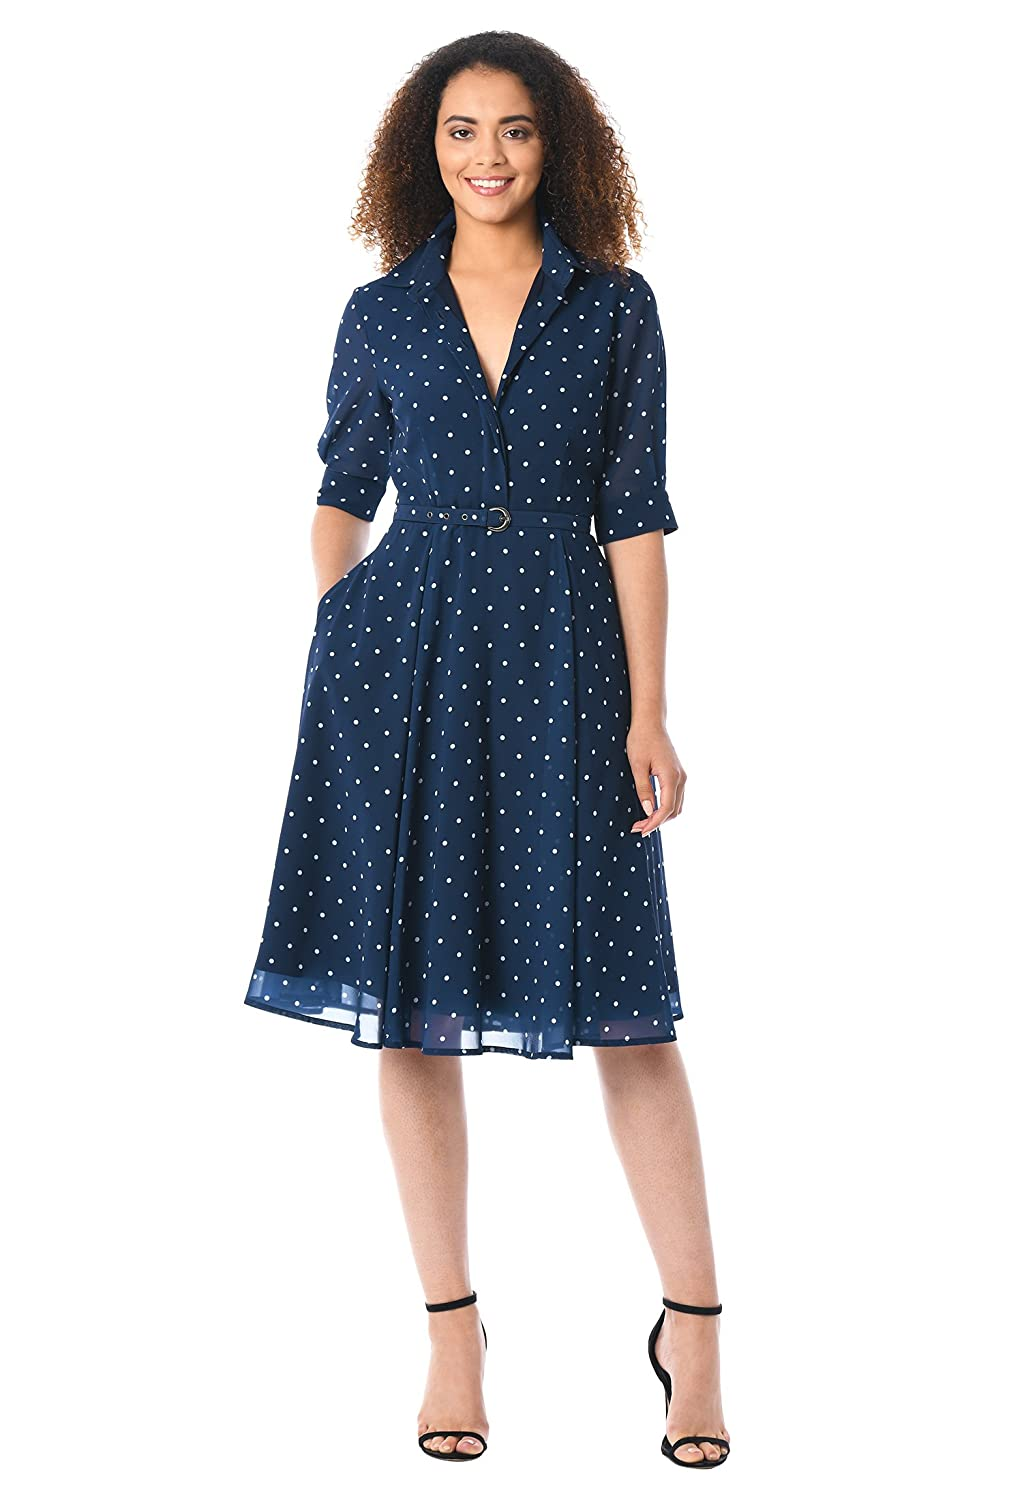 Agent Peggy Carter Costume, Dress, Hats Polka dot Print Georgette eShakti Womens Belted Shirtdress $69.95 AT vintagedancer.com